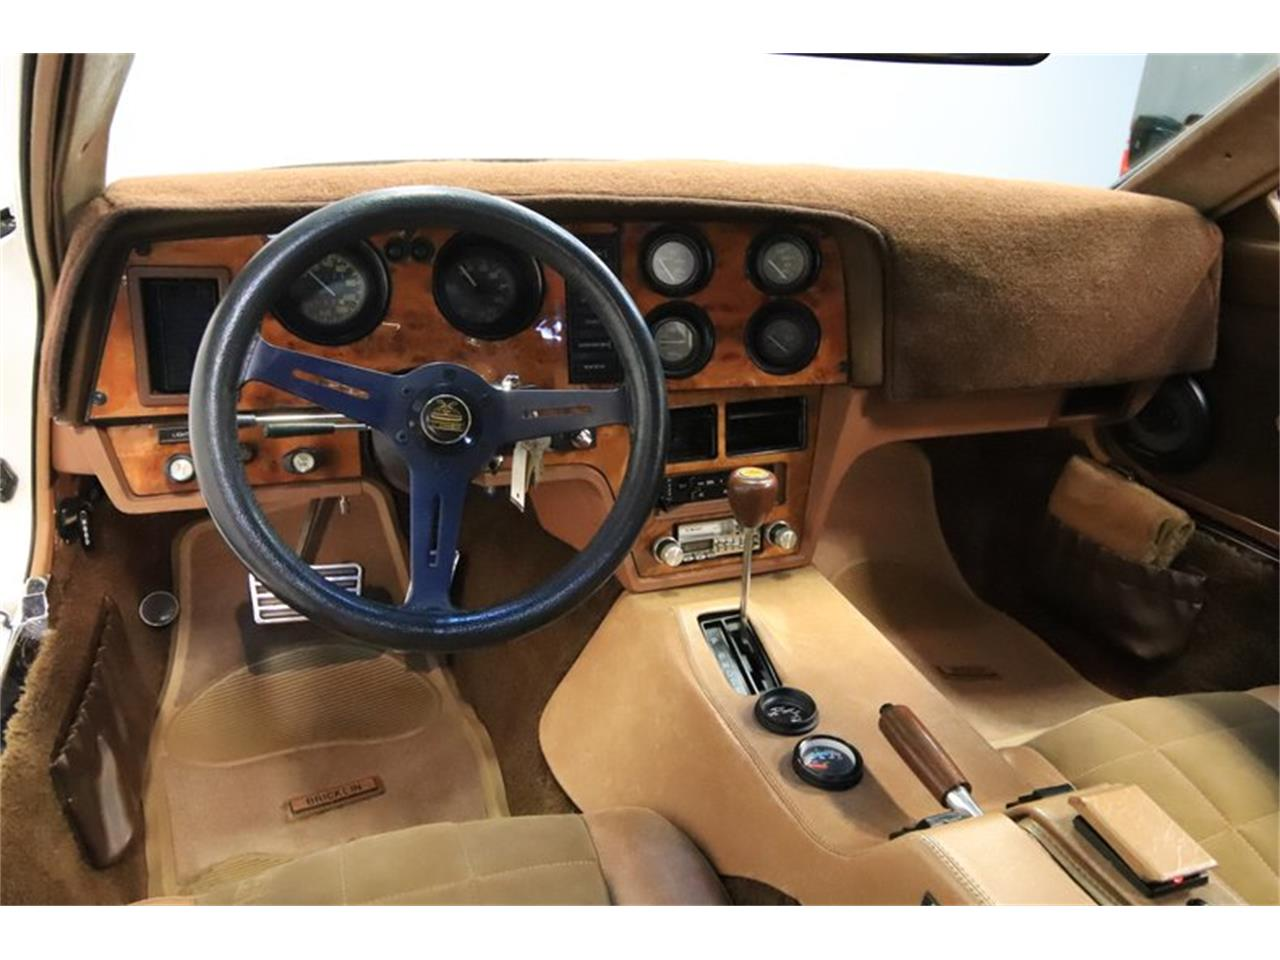 Large Picture of 1974 Bricklin SV 1 located in Arizona - $18,995.00 Offered by Streetside Classics - Phoenix - OT2I